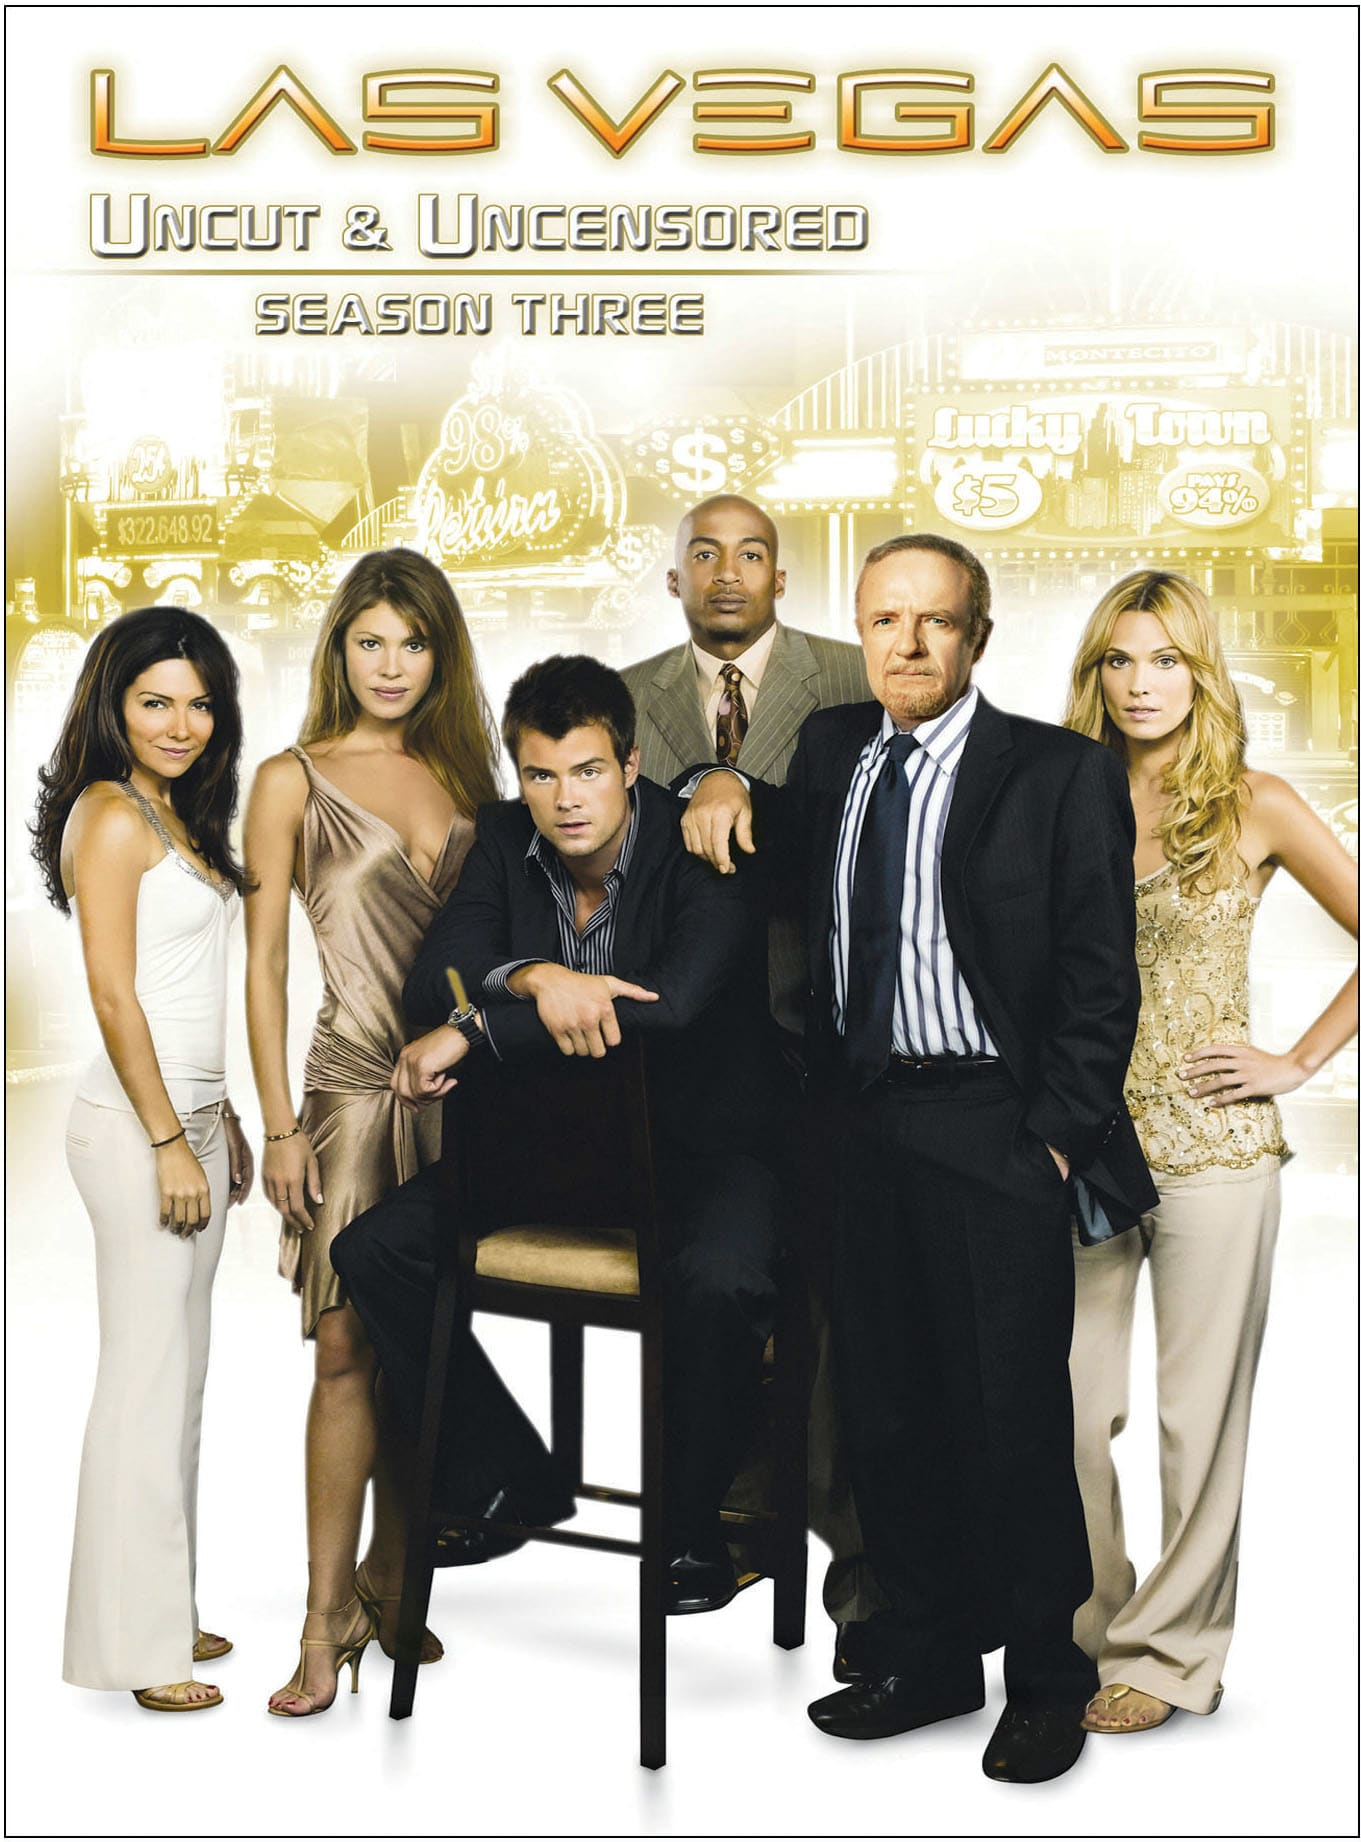 Las Vegas: Season Three (Uncut & Uncensored) [DVD]